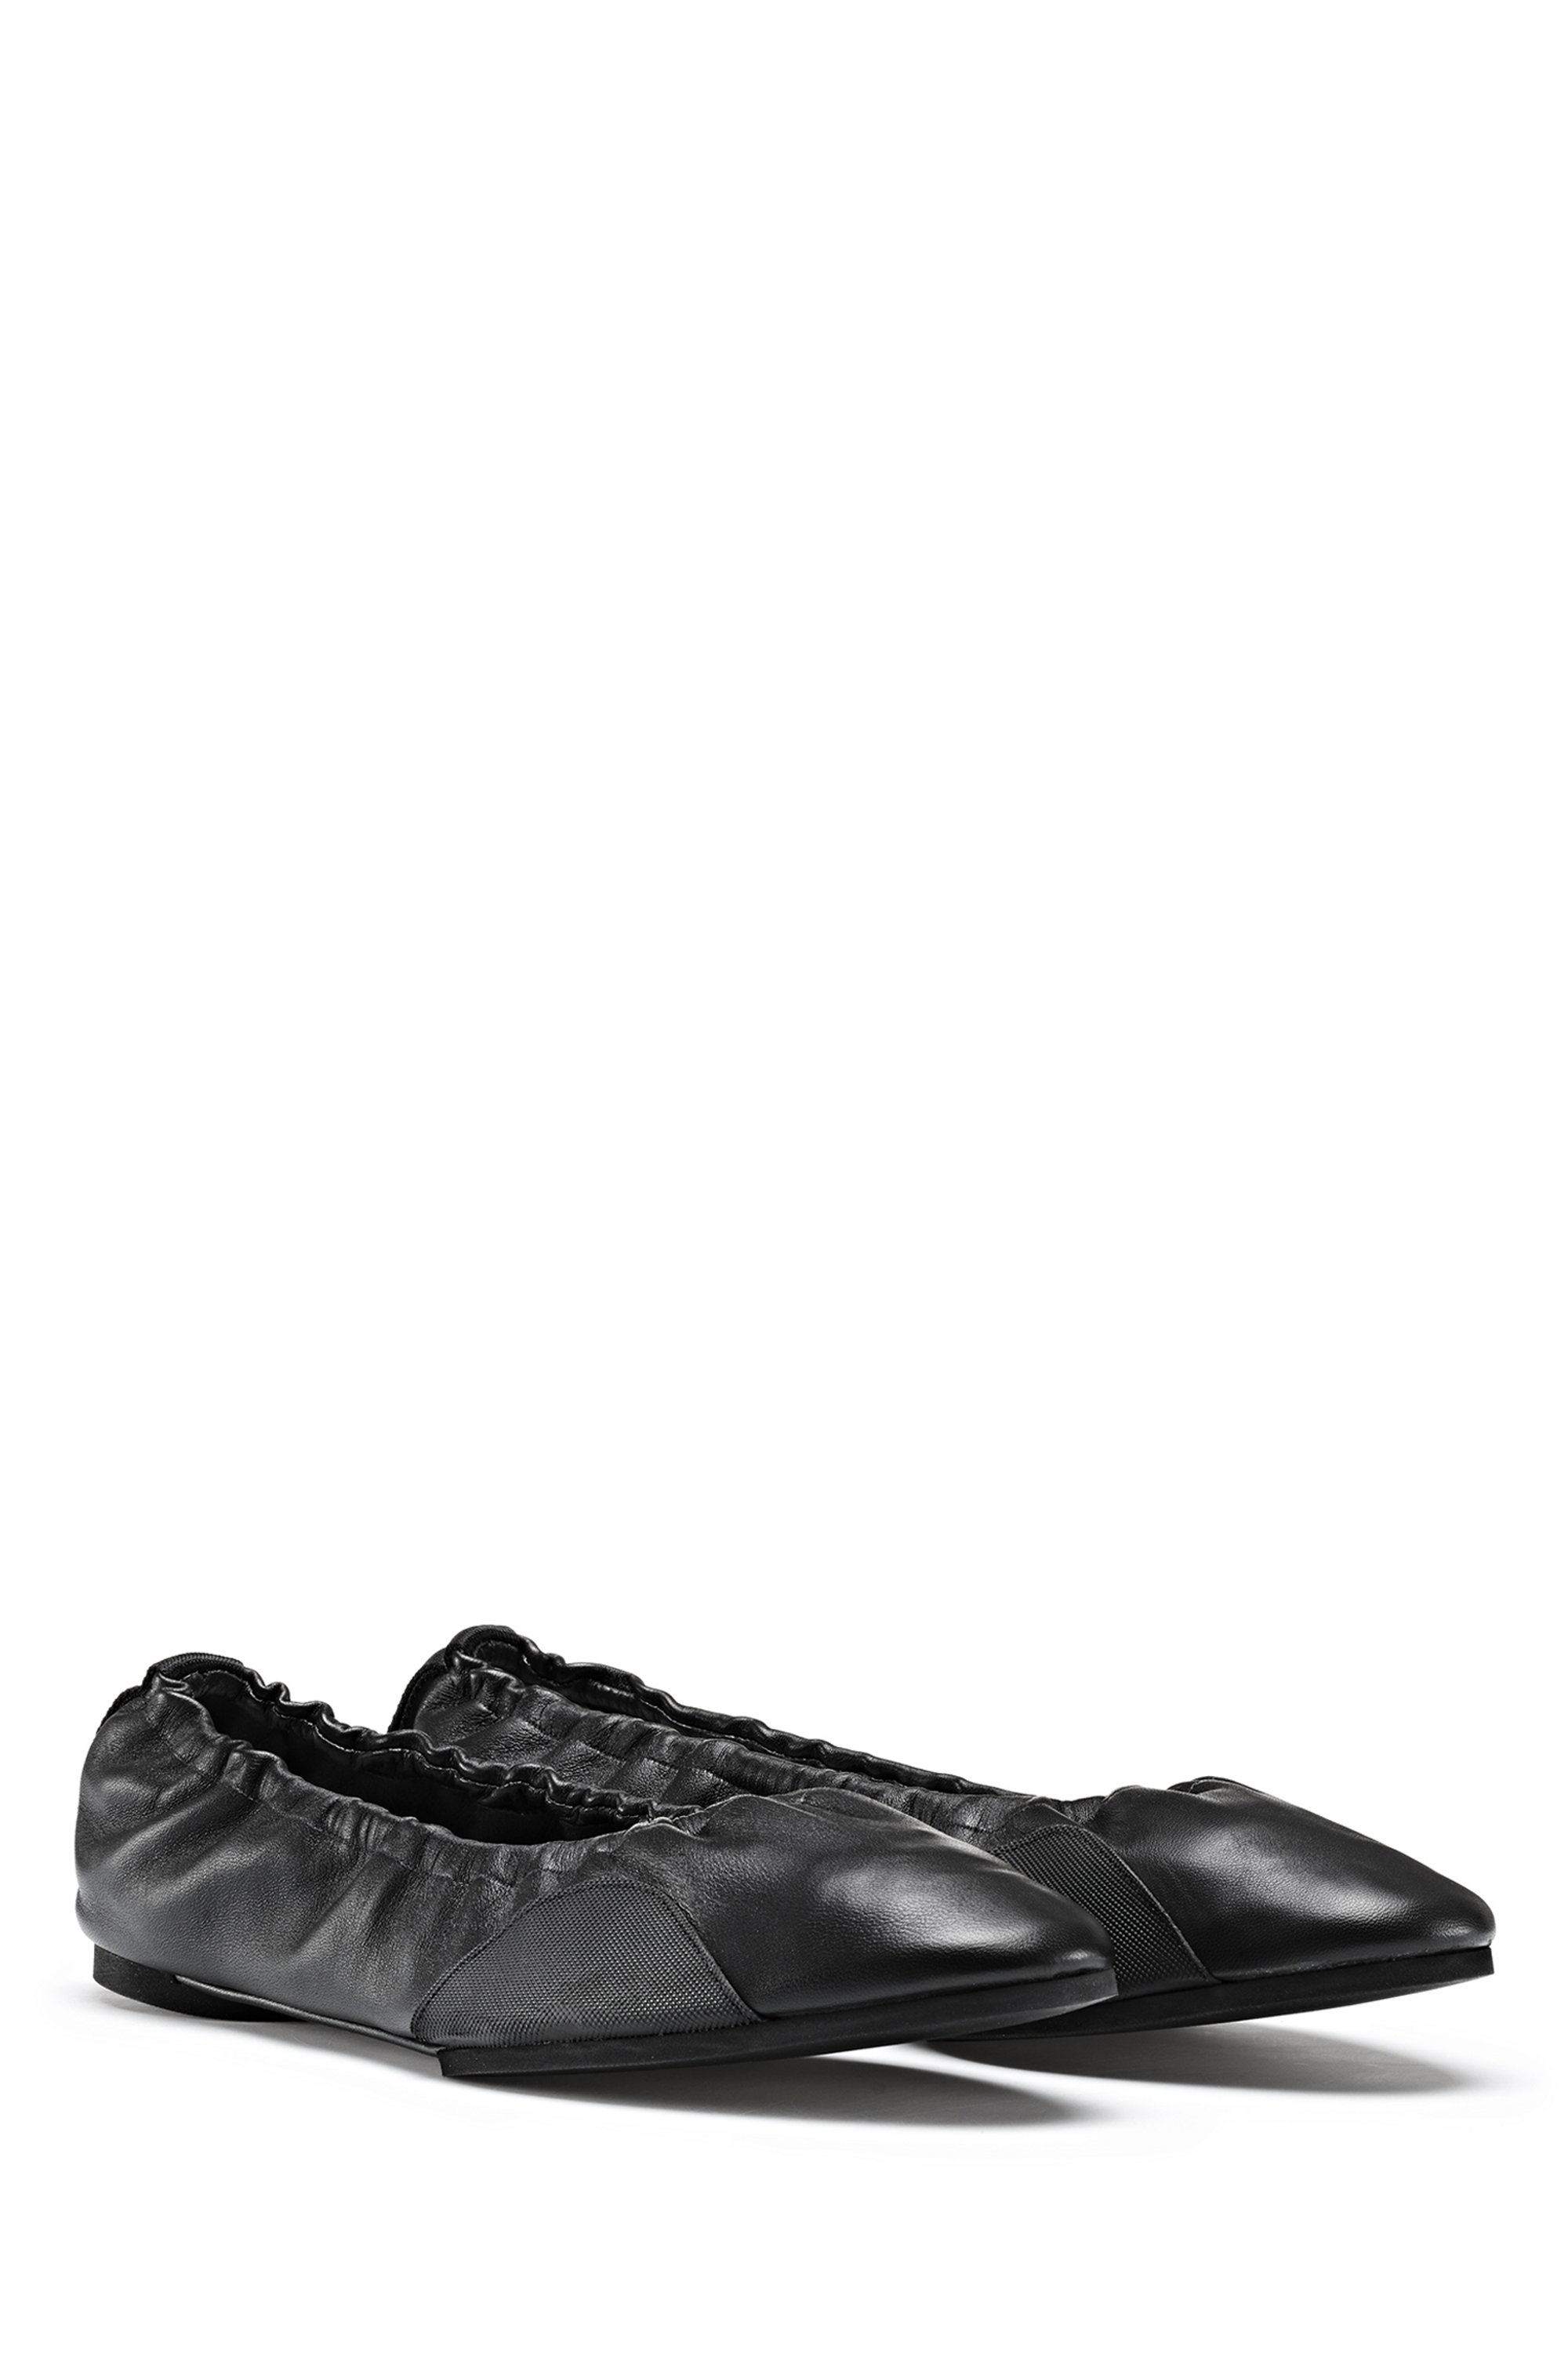 Ballerina pumps in nappa leather with flexible sole